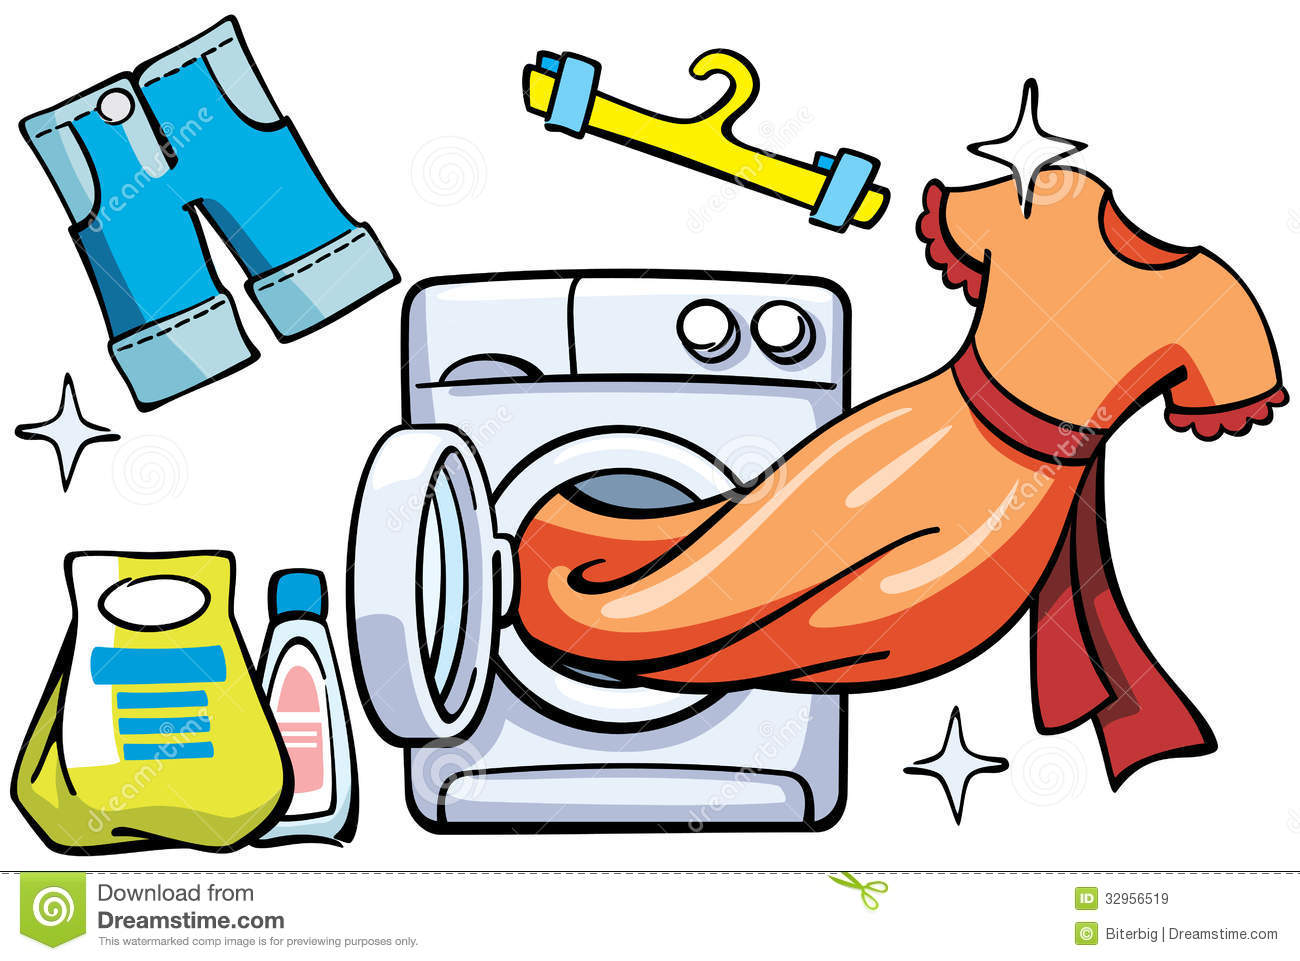 Clean clipart. Clothes